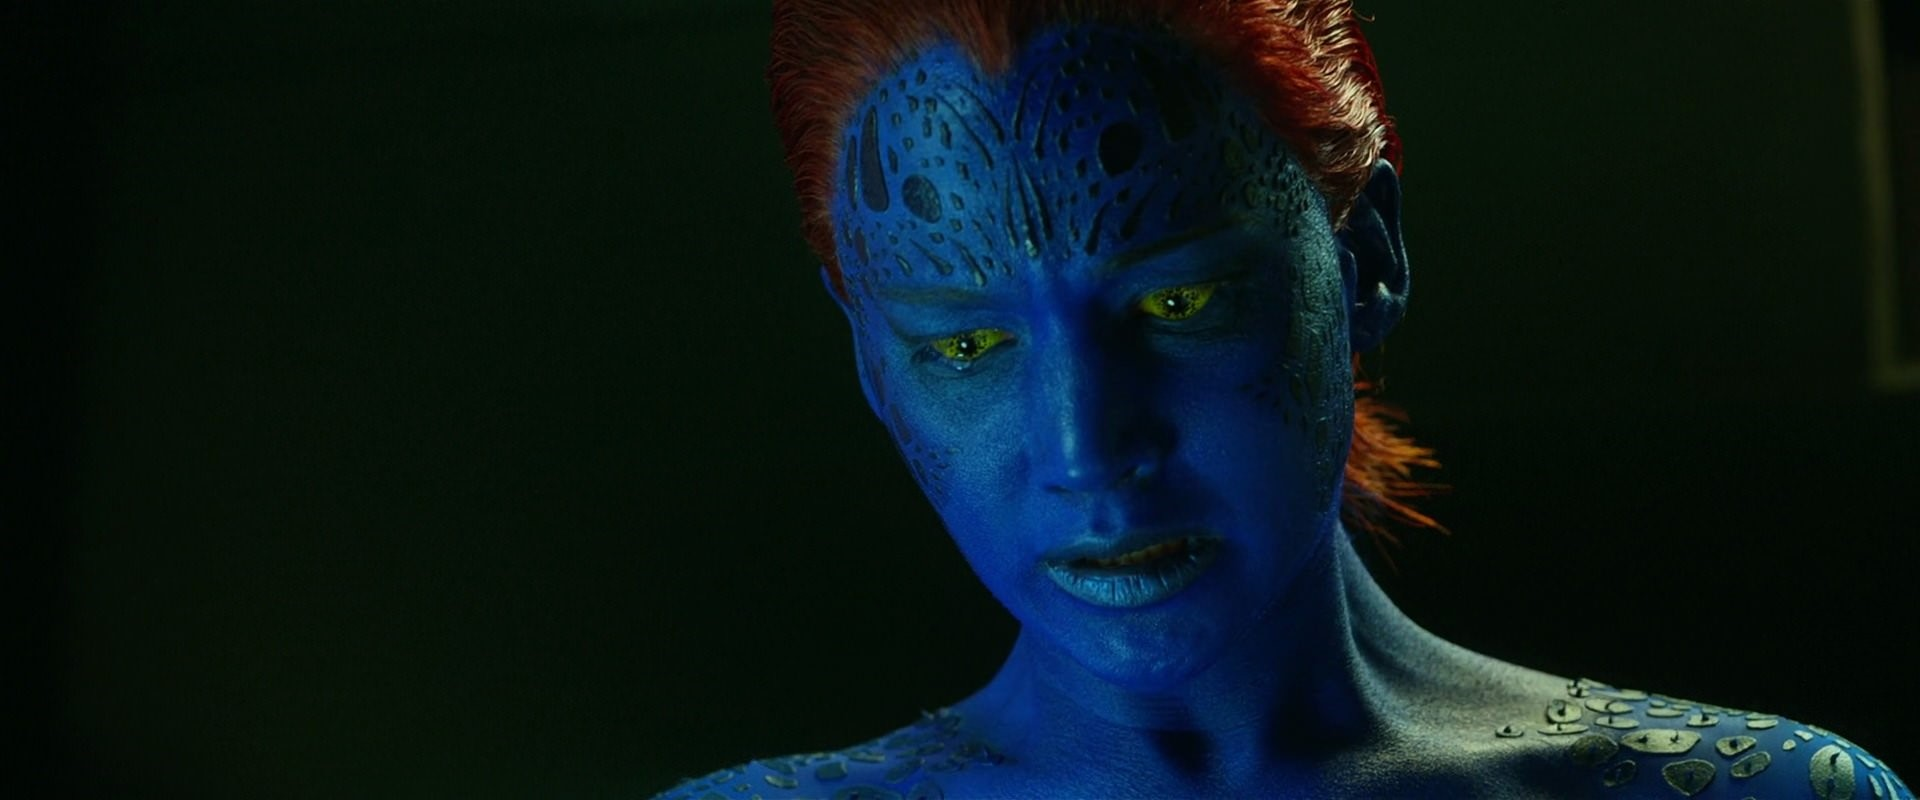 x-men-mystique.jpg